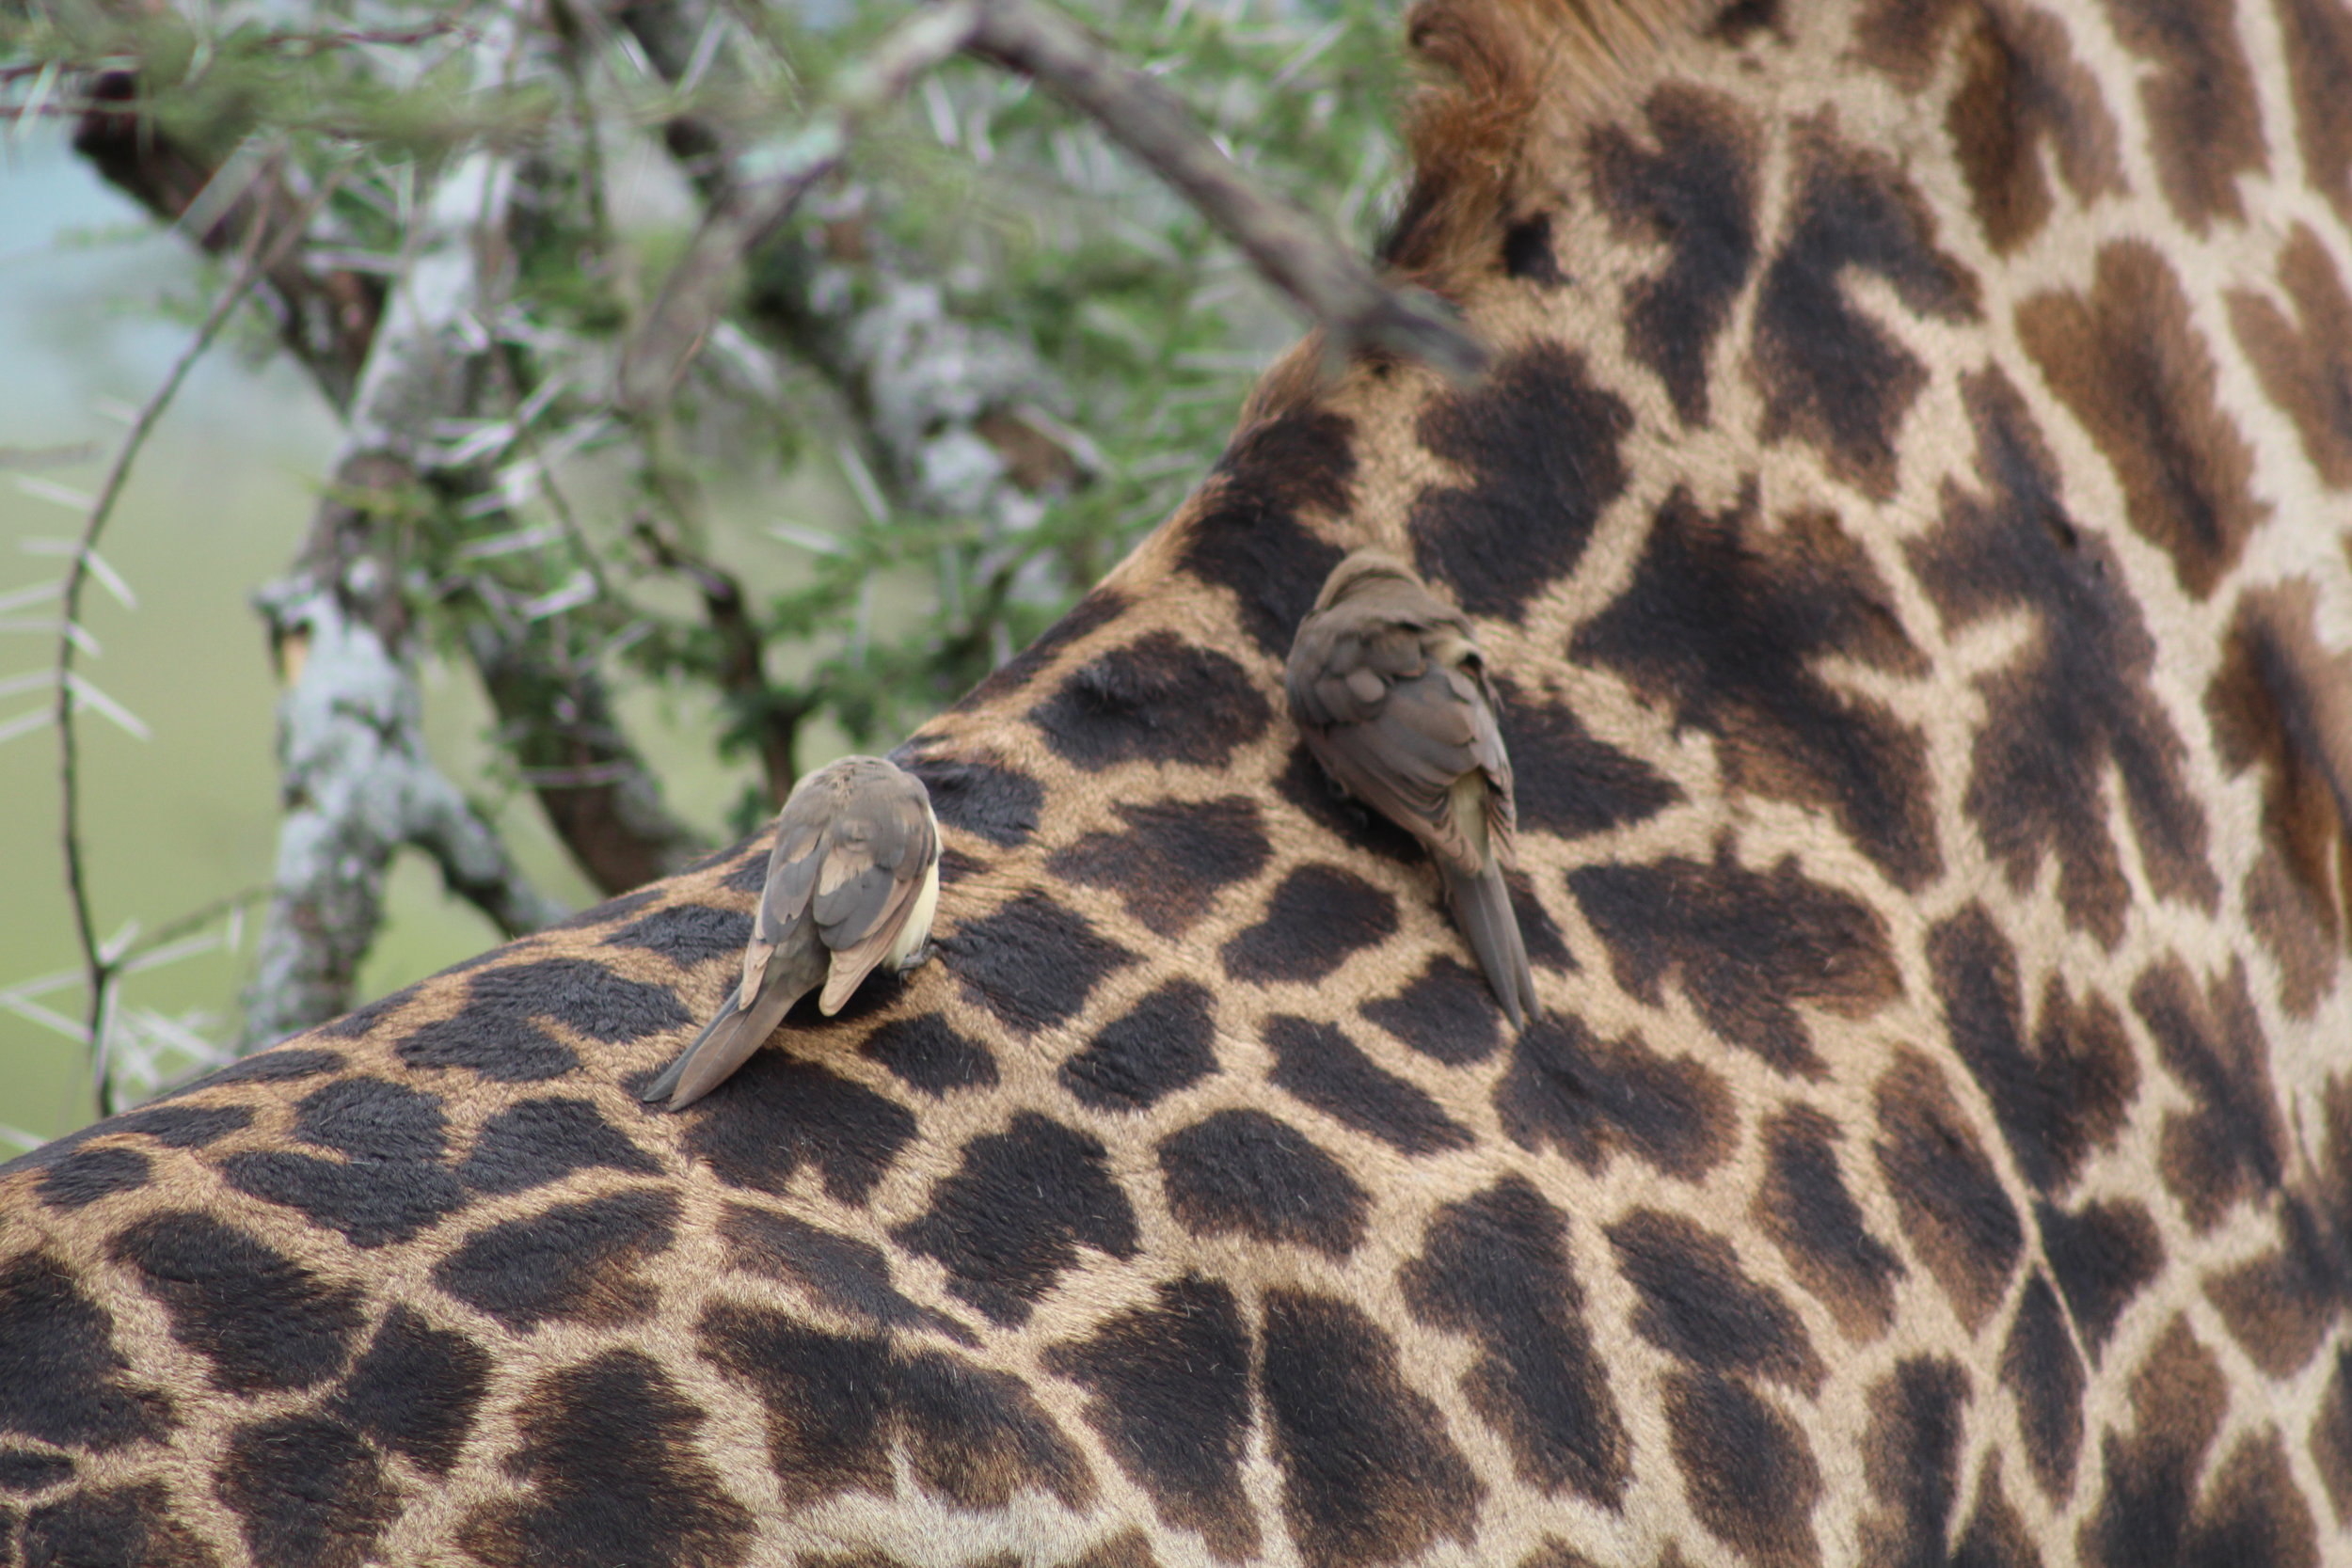 Giraffe with two birds taking a ride!